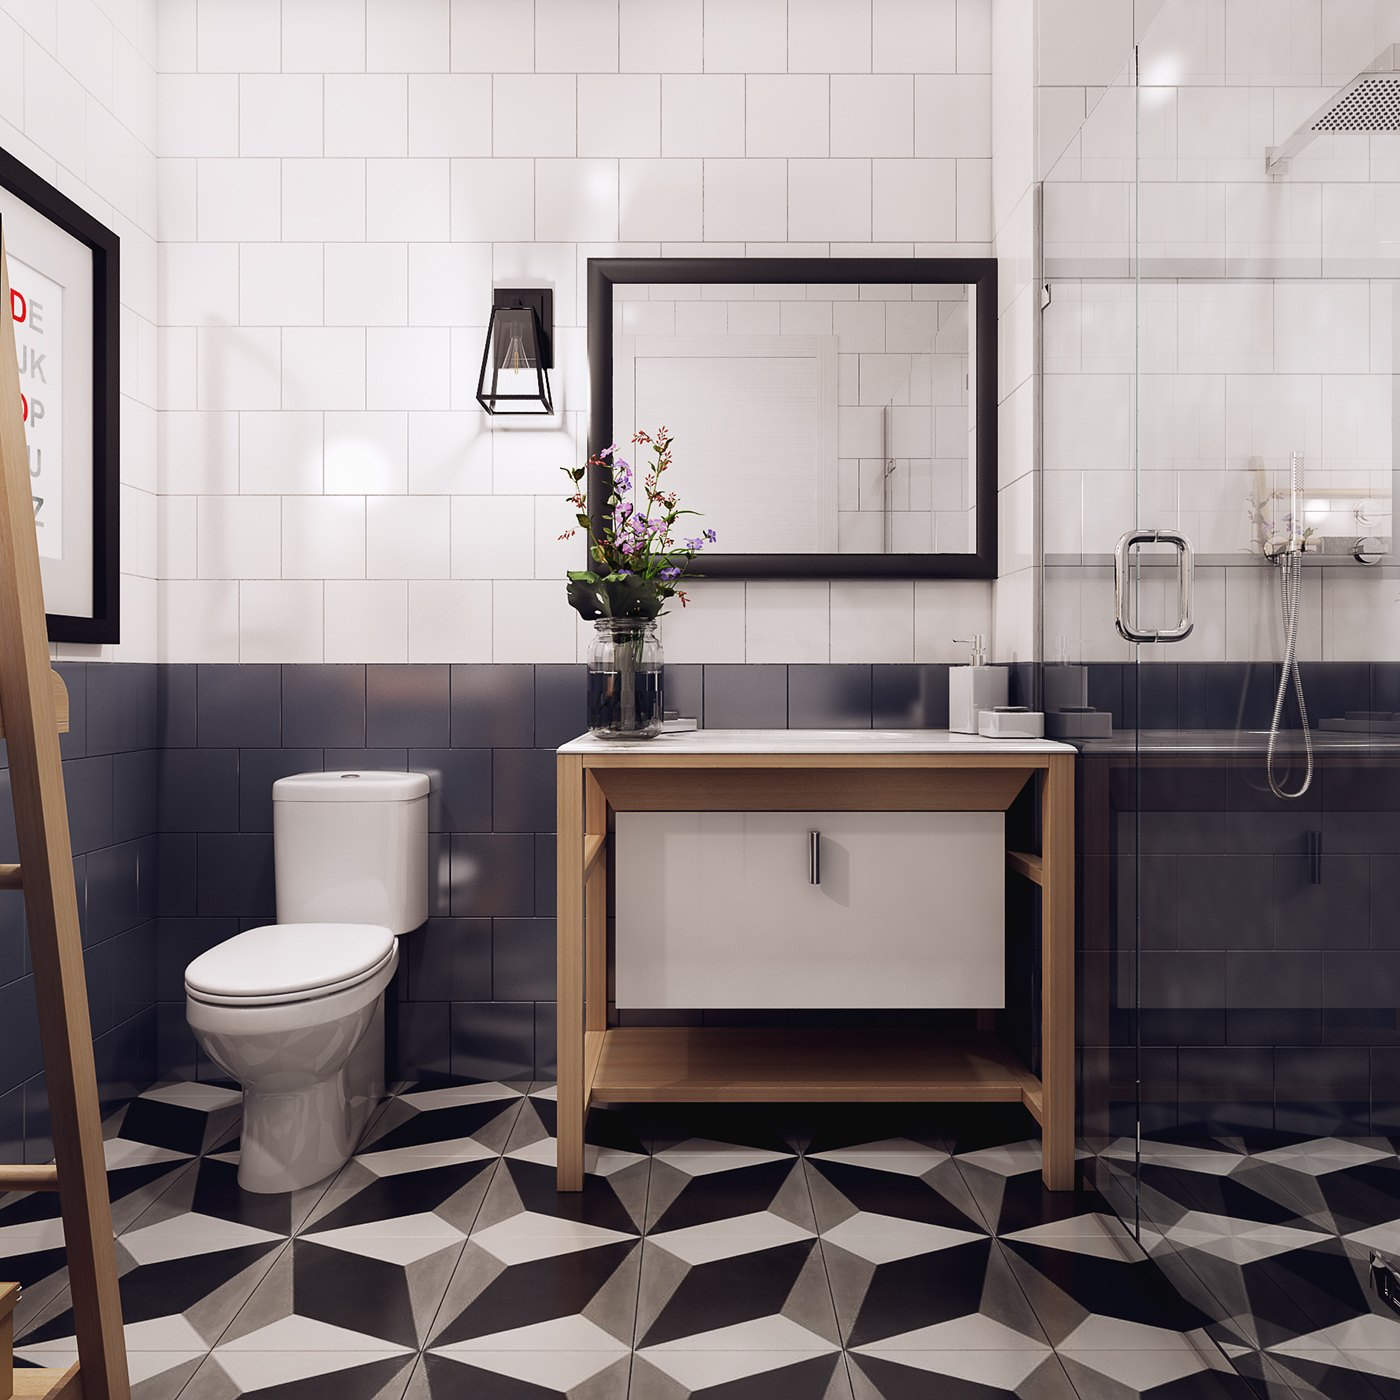 Geometric Scandinavian Bathroom Design - 10 stunning apartments that show off the beauty of nordic interior design